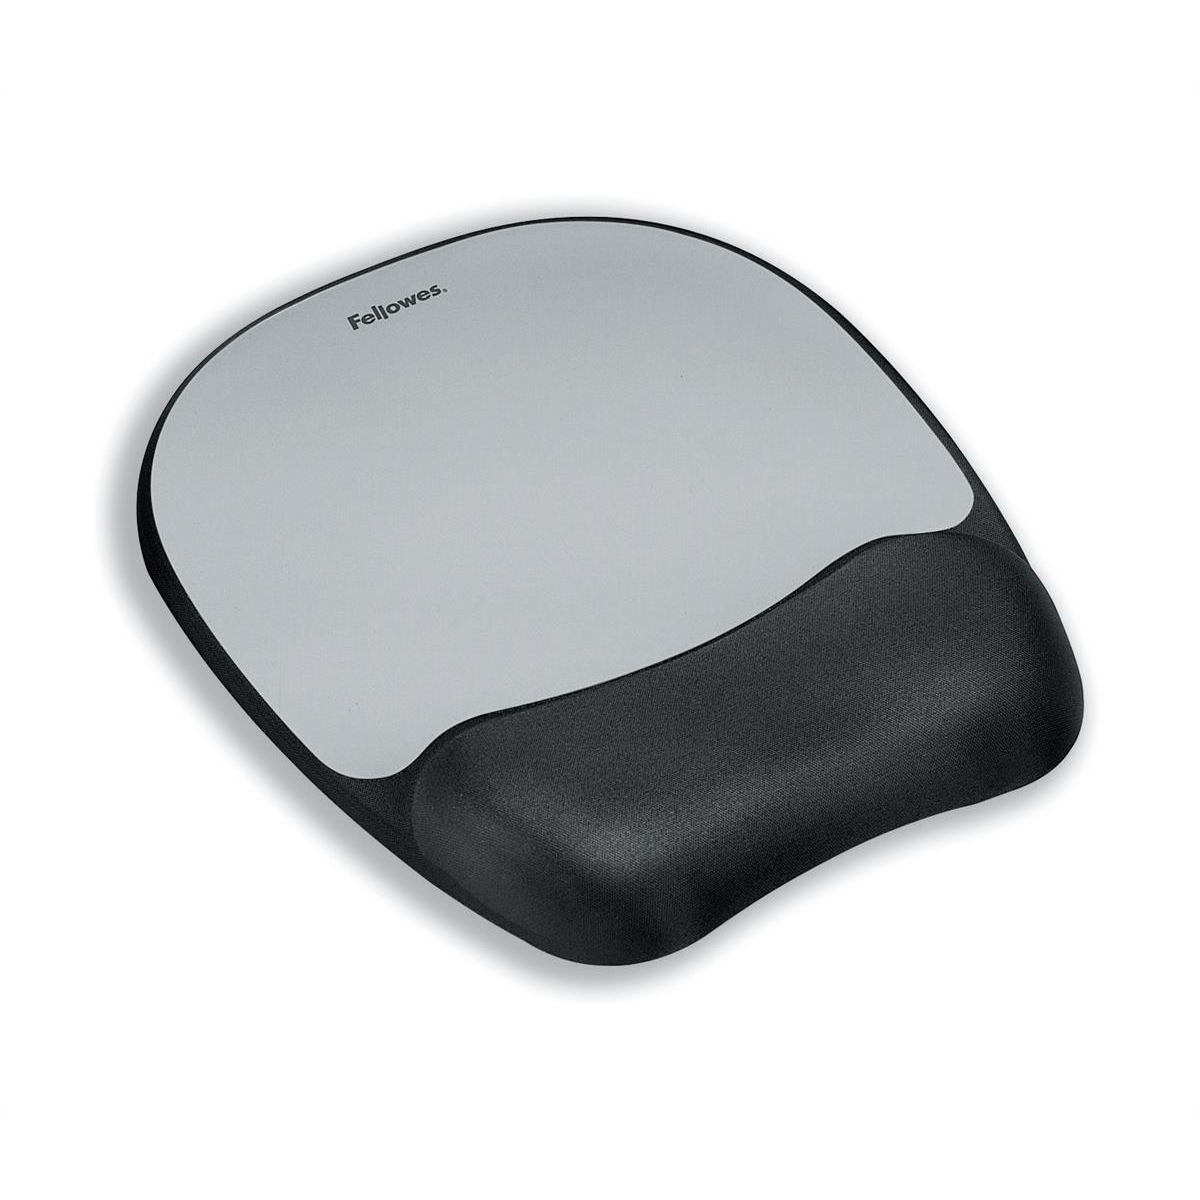 Wrist Rests Fellowes Mousepad Non-skid Memory Foam Silver Ref 917580